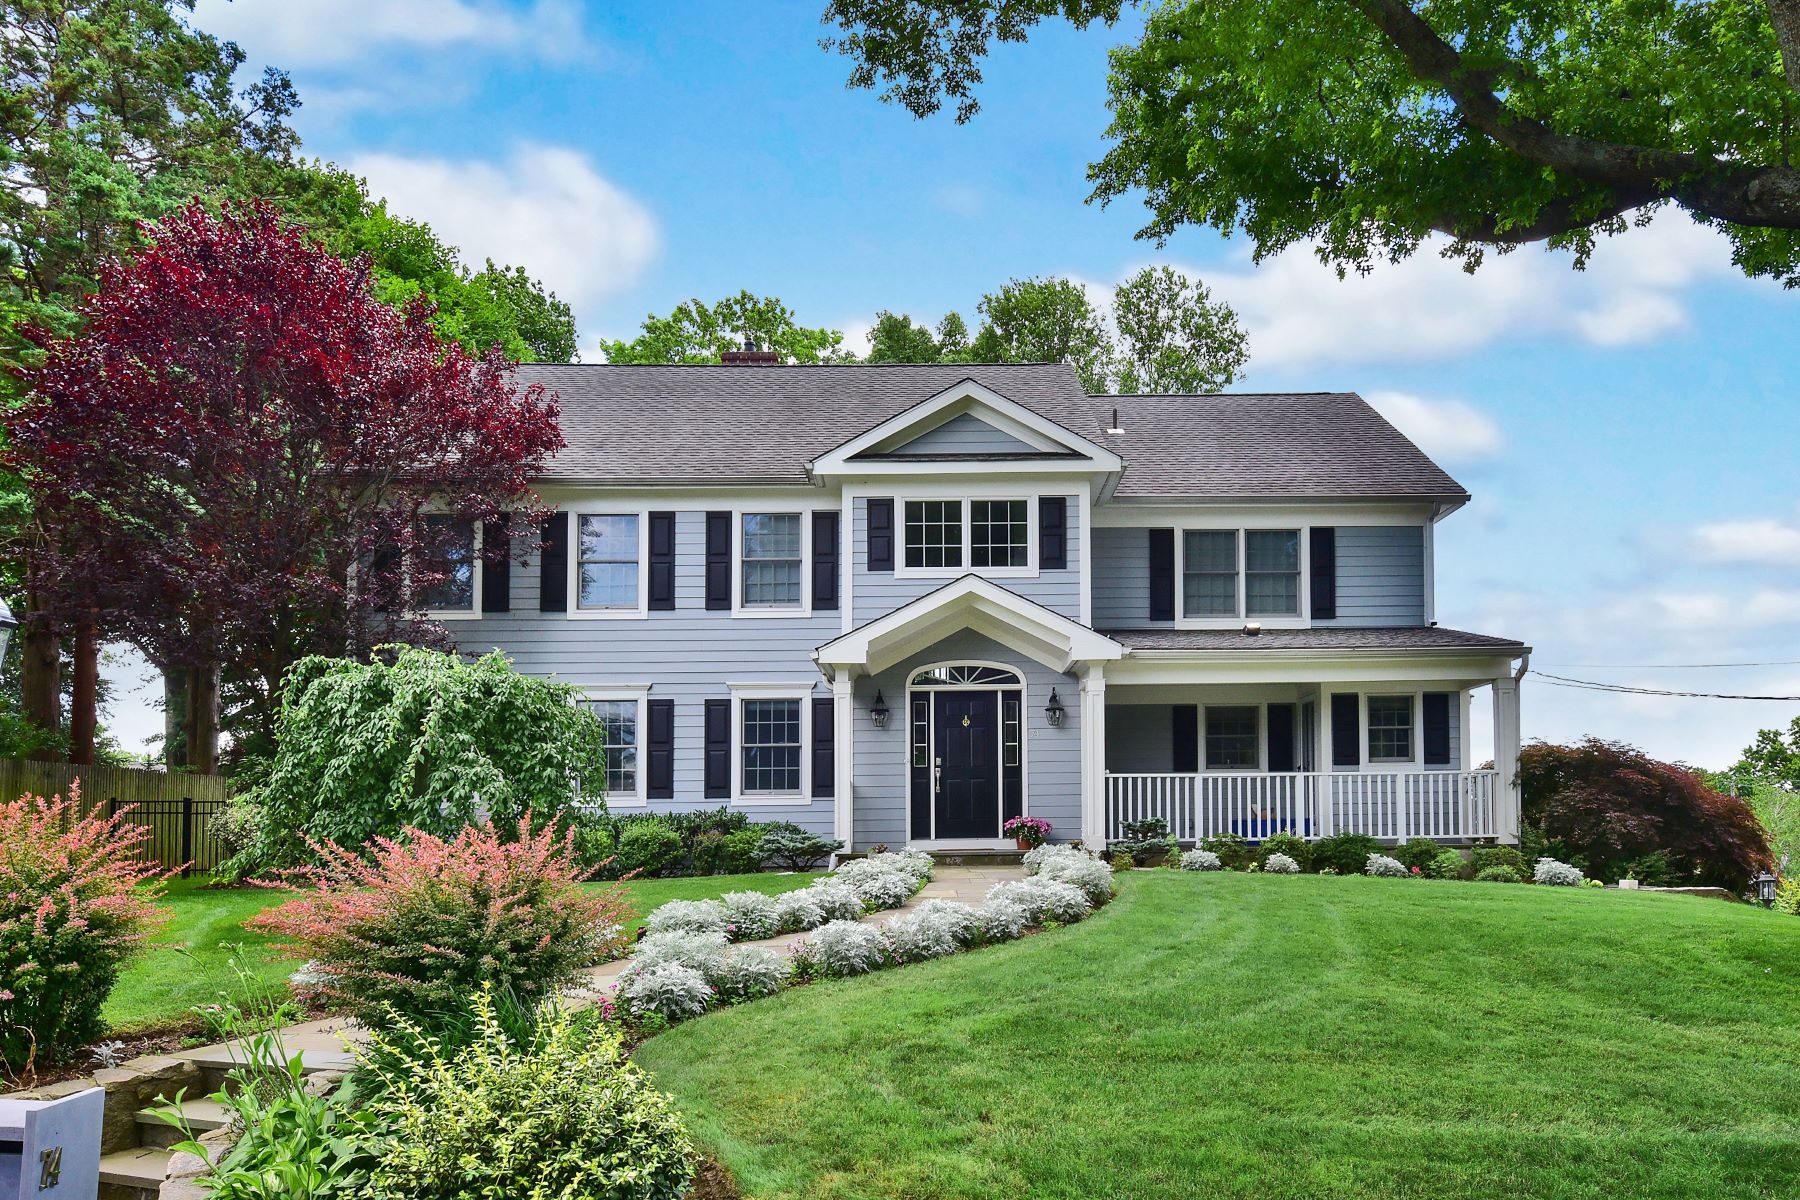 Single Family Home for Sale at Elegant Colonial 74 Hillandale Drive New Rochelle, New York 10804 United States